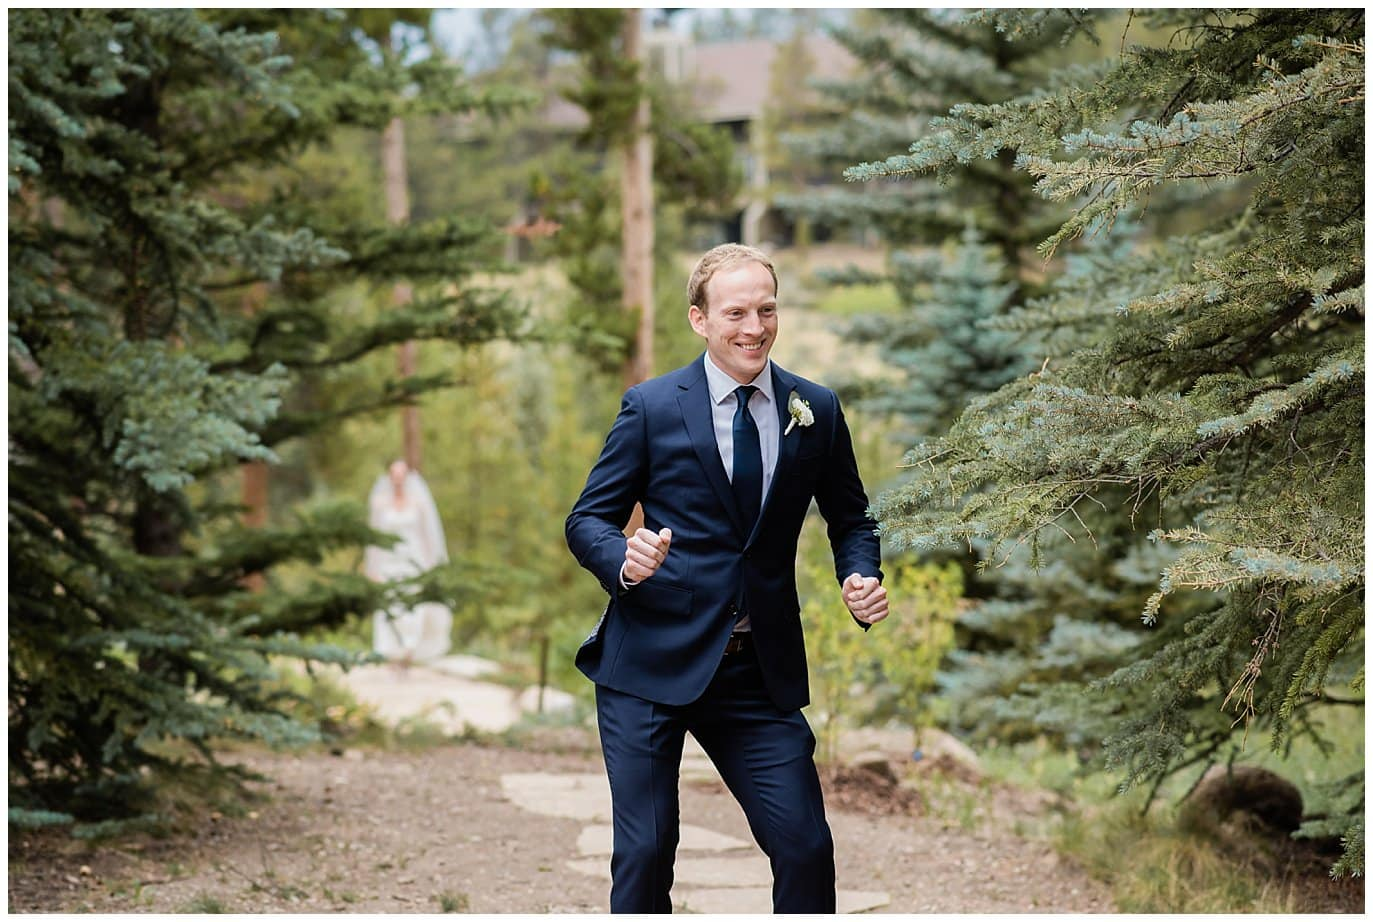 groom dancing during first look at Arapahoe Basin Black Mountain Lodge Wedding by Silverthorne Wedding Photographer Jennie Crate